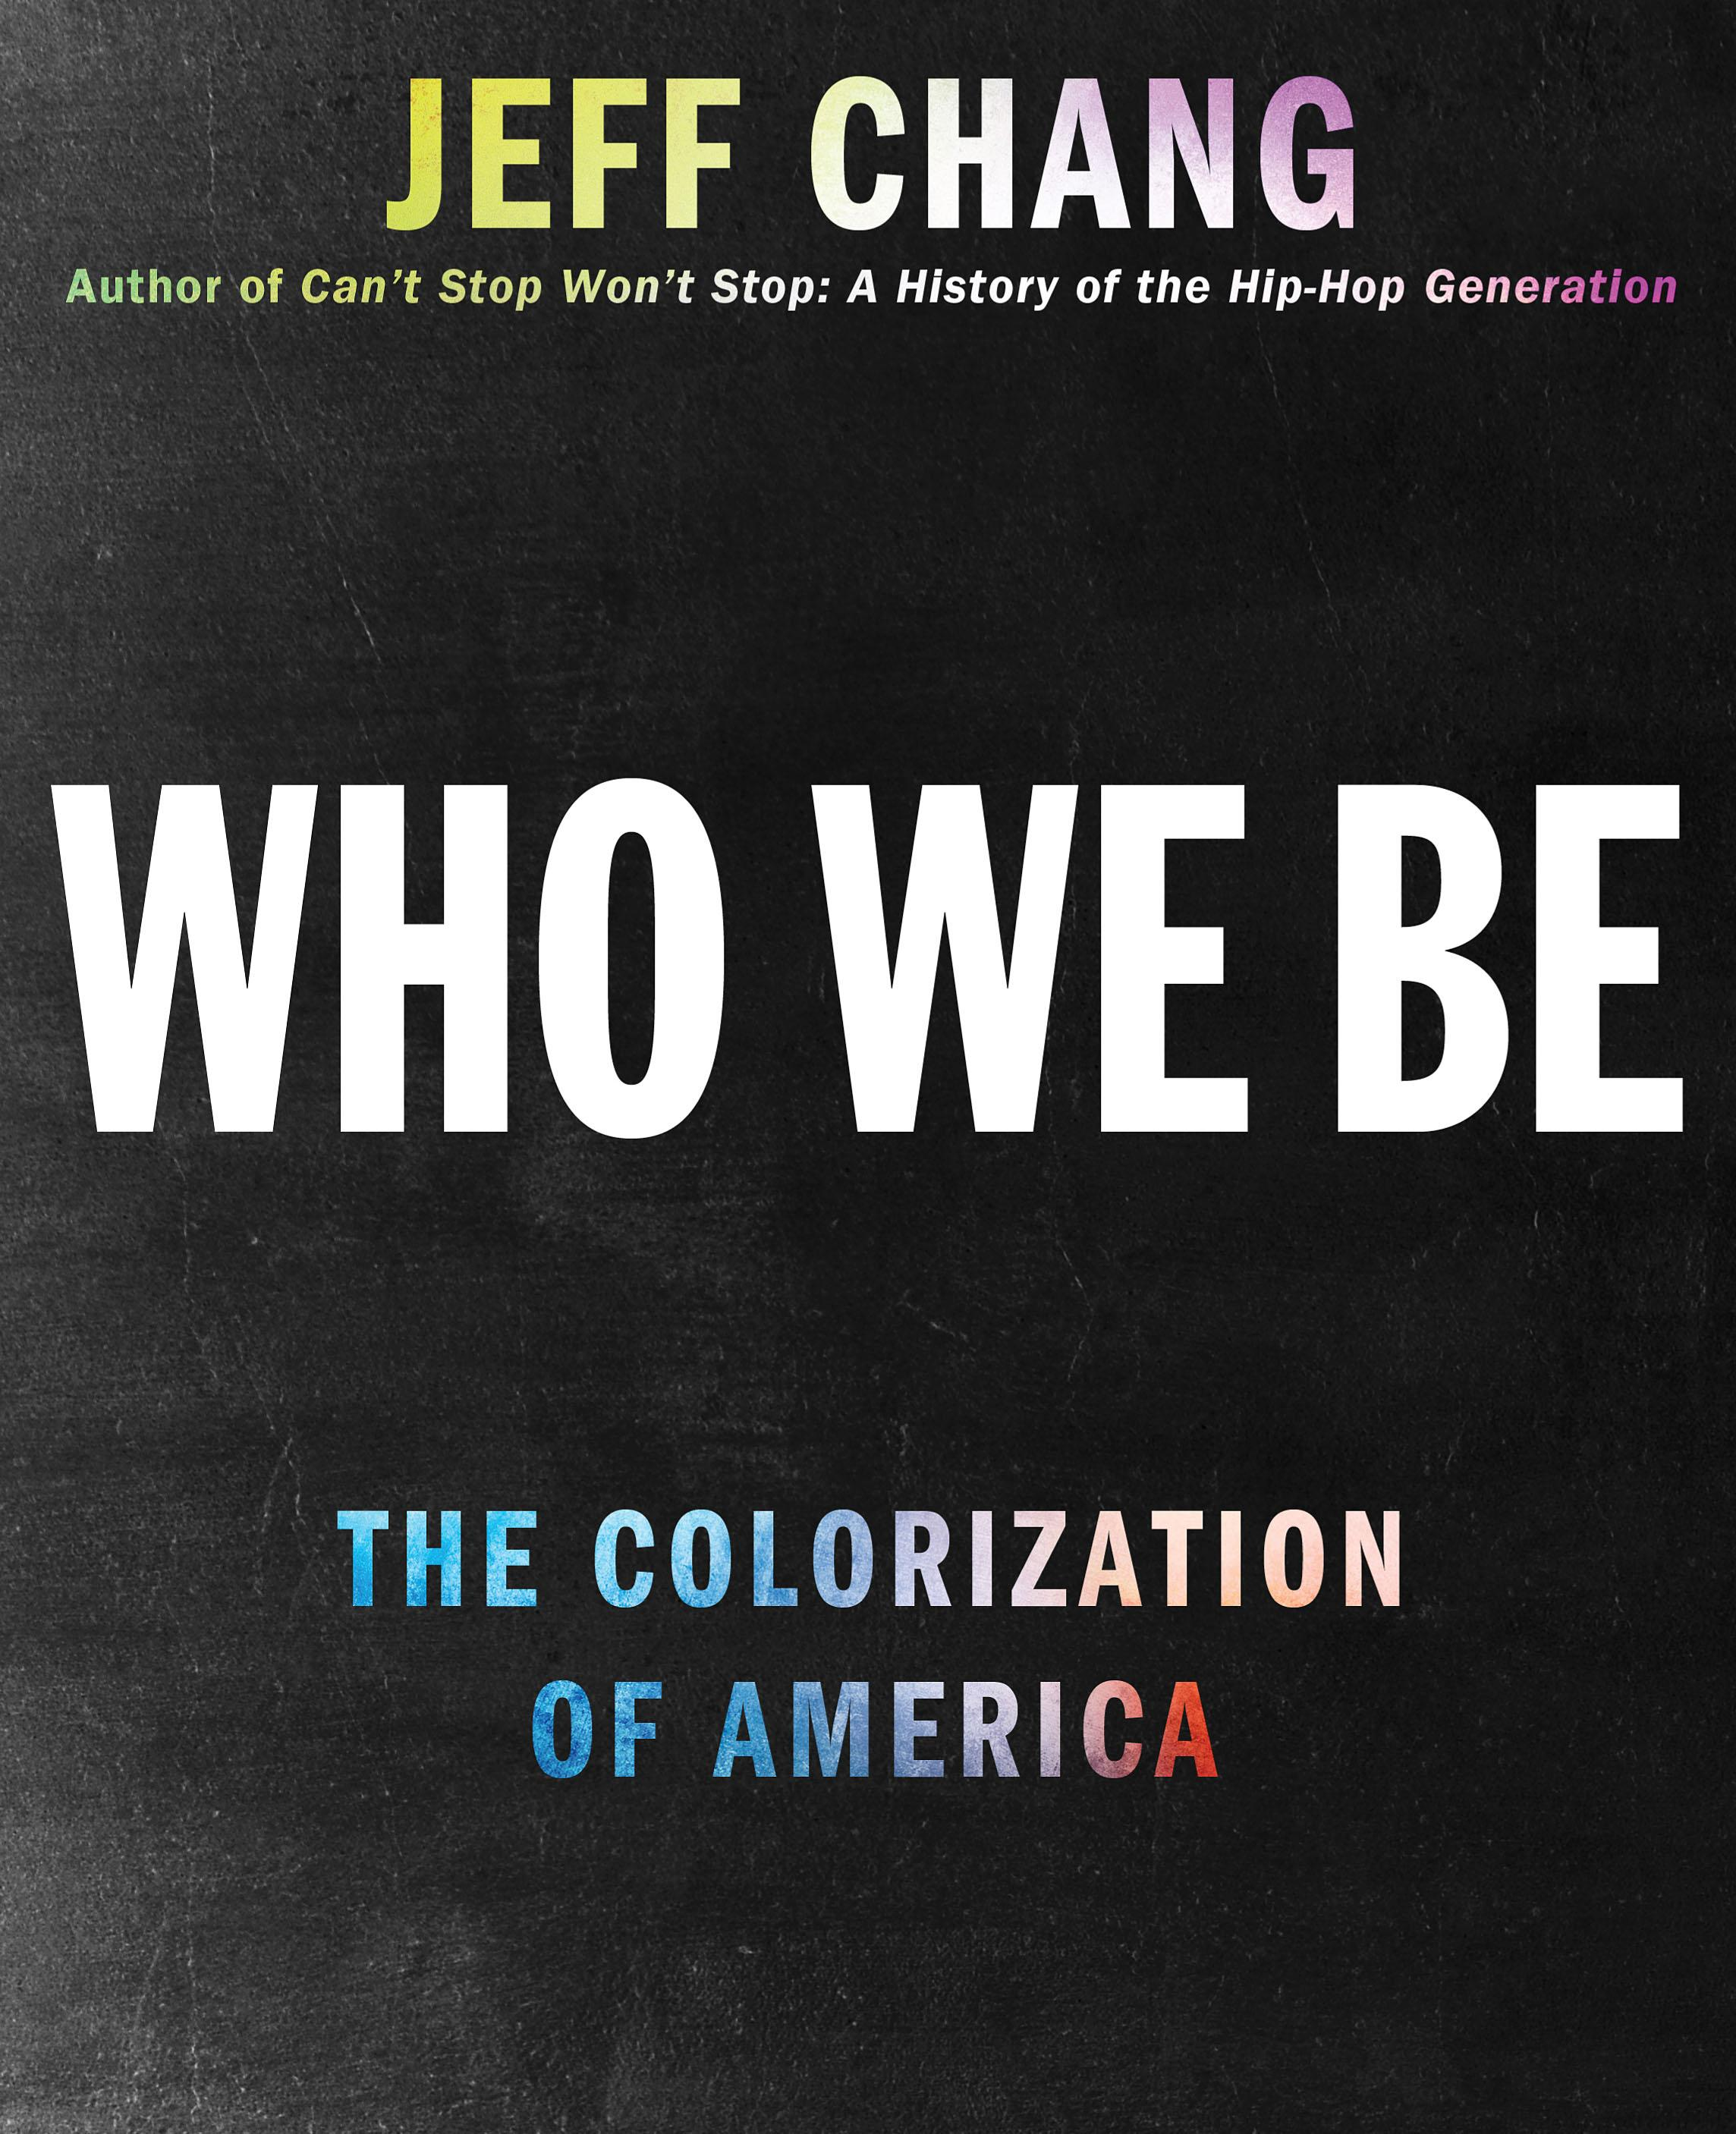 Jeff Chang's book Who We Be